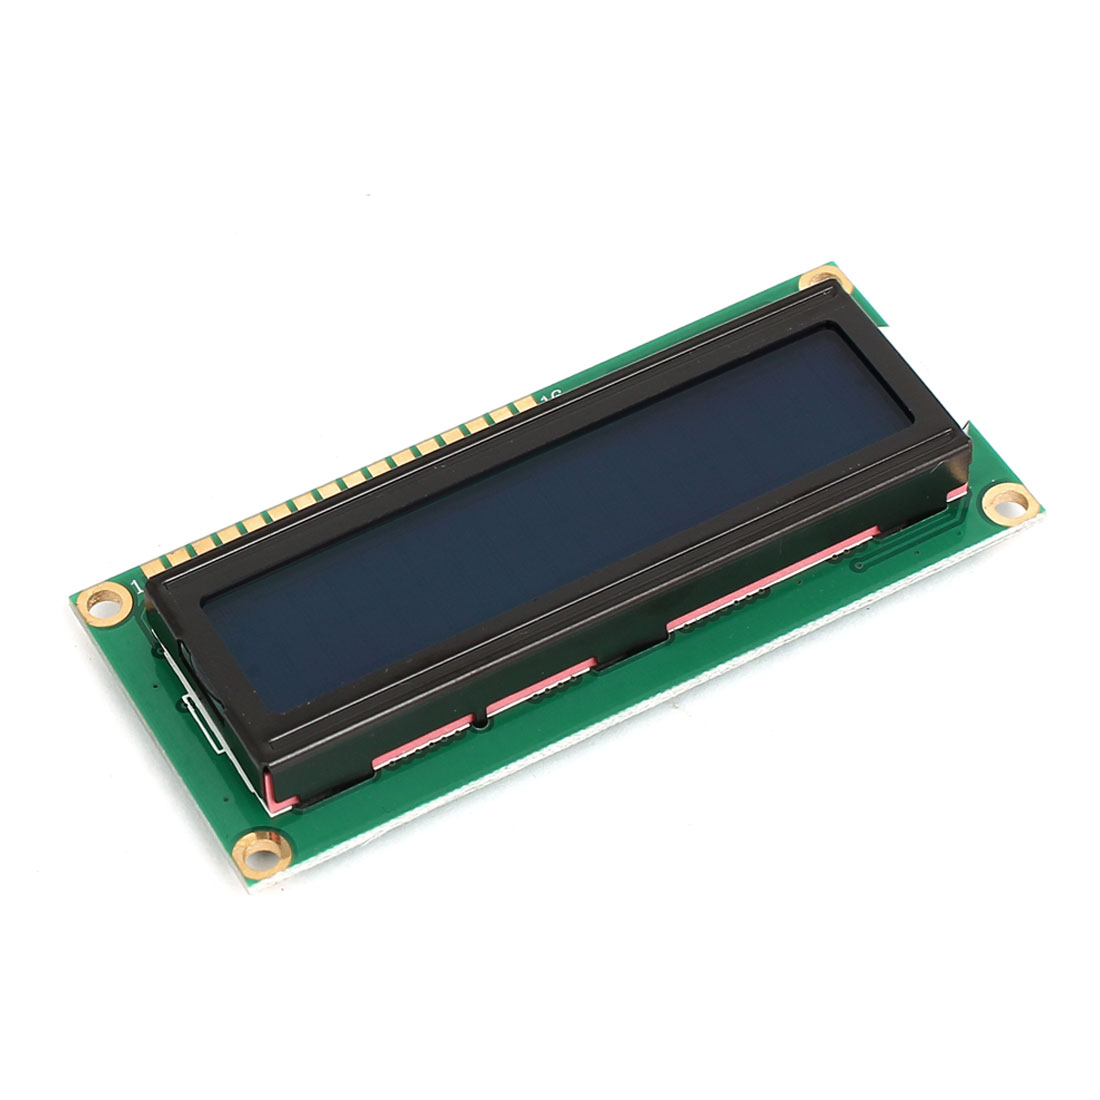 LCD1602A DC 5V 16x2 Character Blue Backlight LCD Screen Display Module